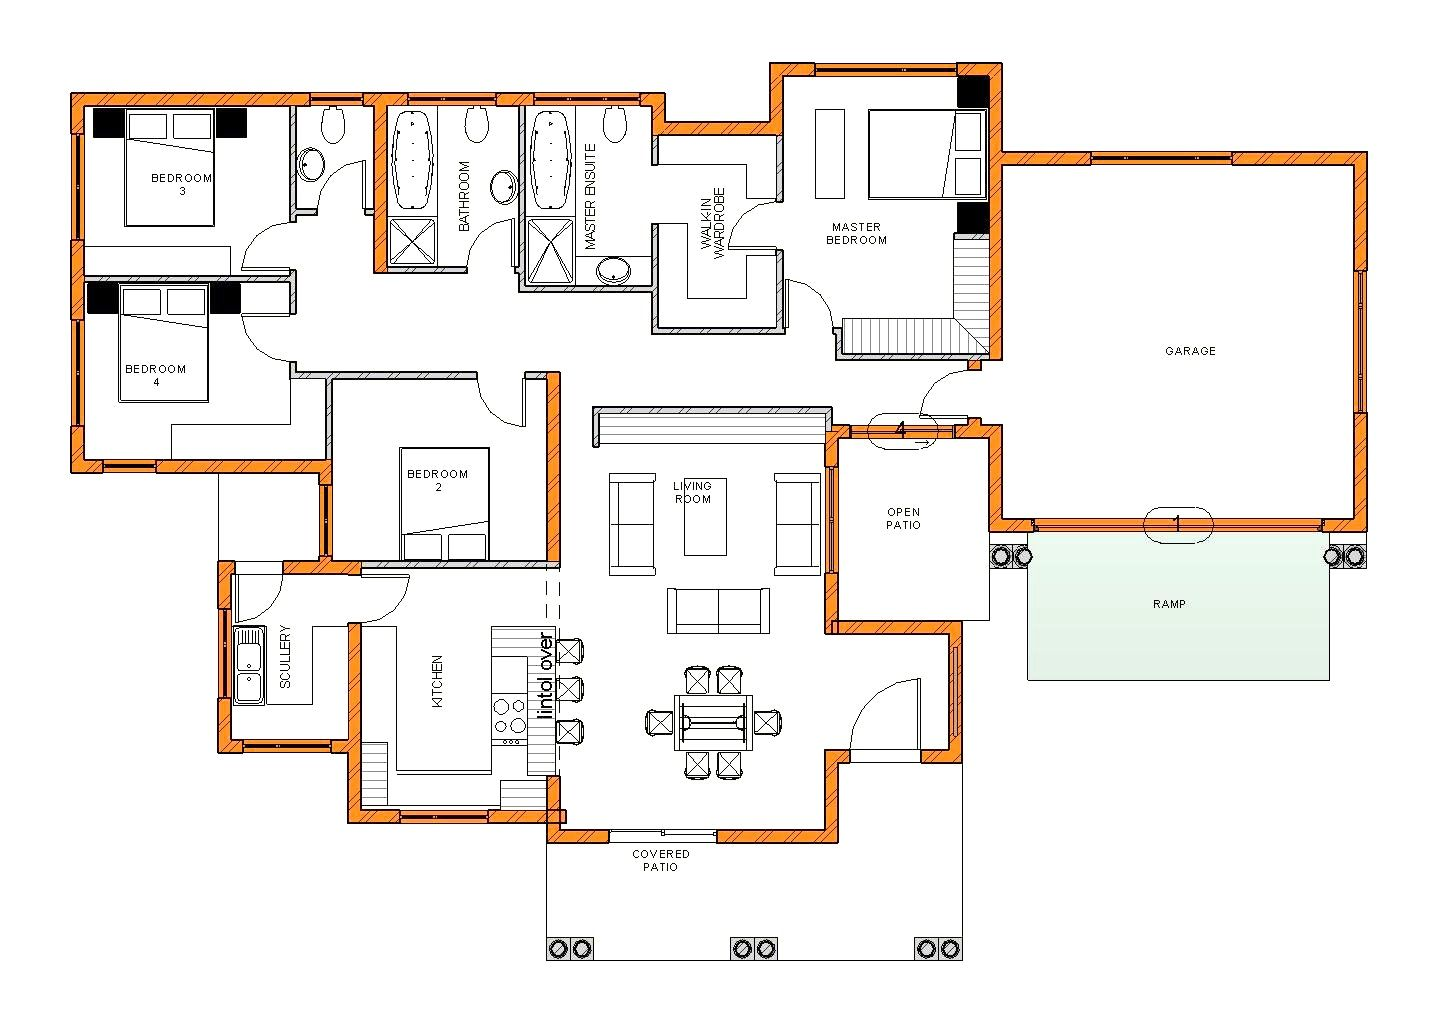 0f87e8d8e35c8791c594884421f2f8da - 45+ Modern House Botswana Township 3 Bedroom House Plans South Africa Pics